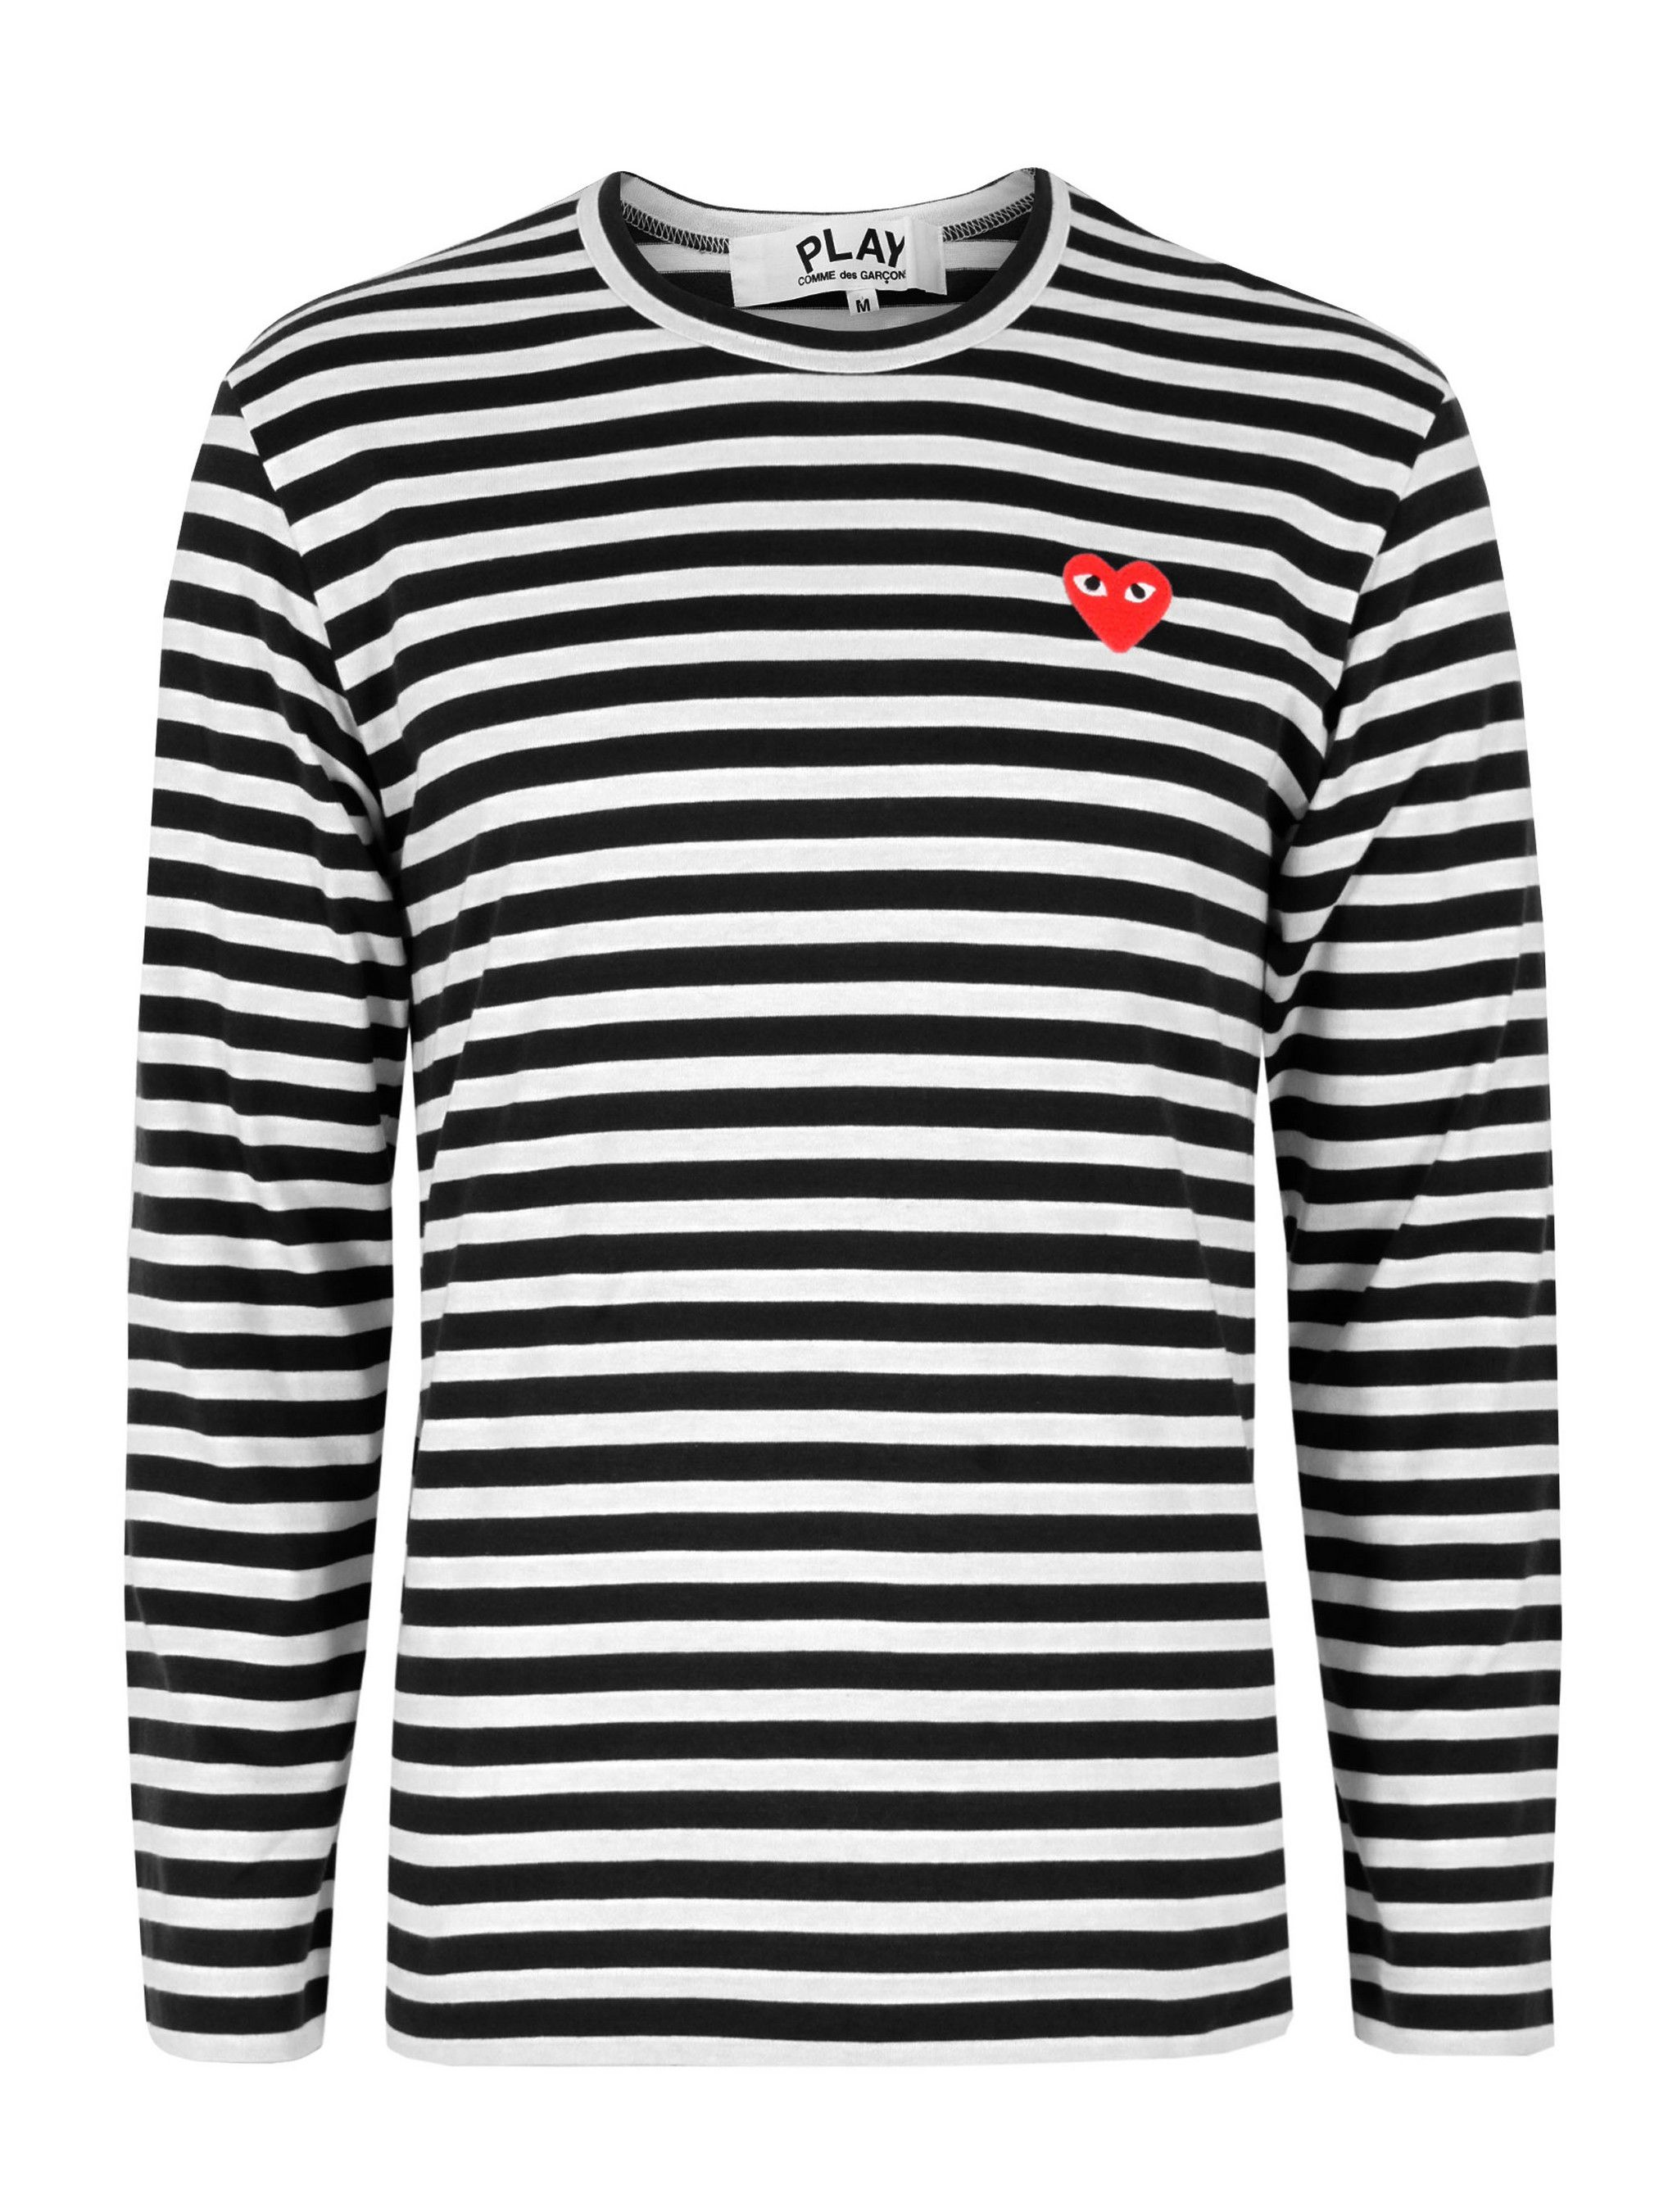 7cb1ab8a5fefc Comme des Garcons Play Black Stripe T-Shirt